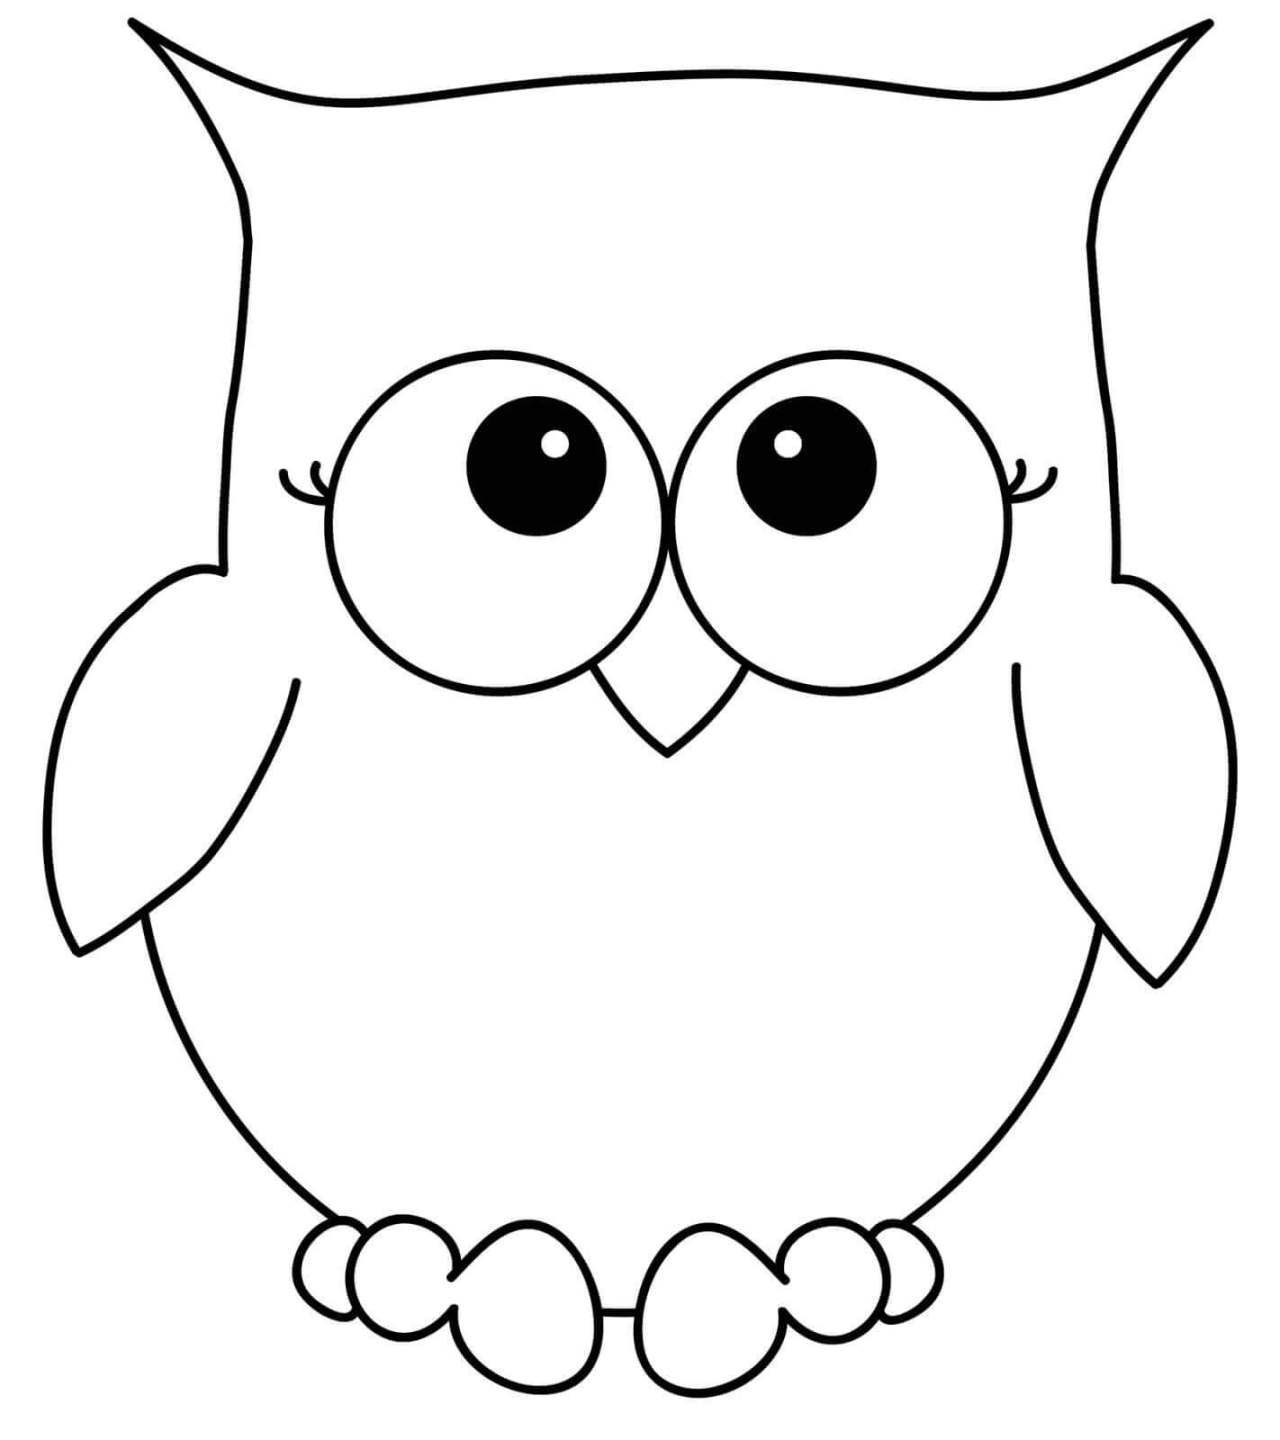 Halloween Coloring Pages For Kids Free Printables Owl Coloring